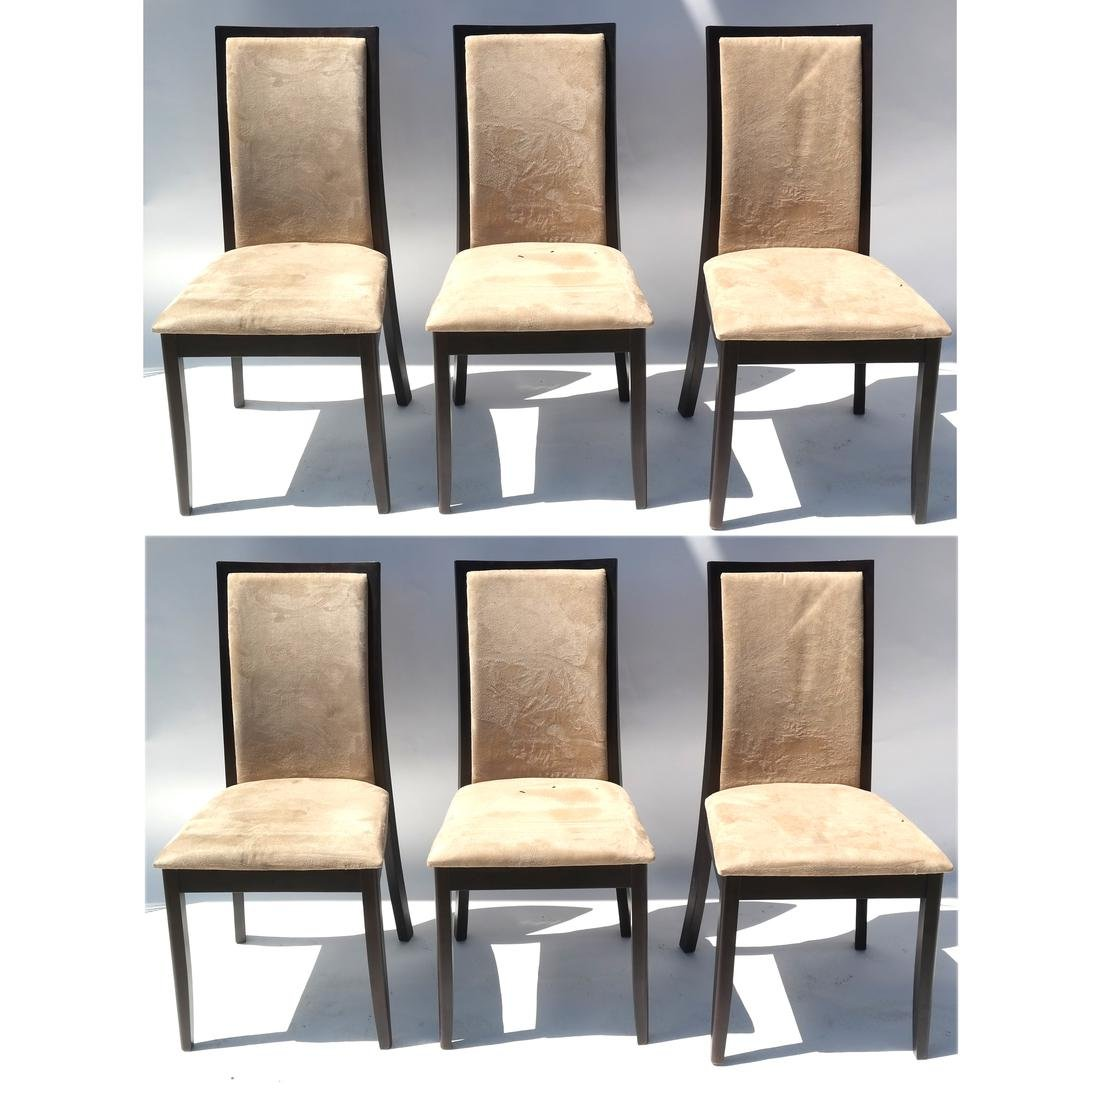 Mid-Century Modern Suite of 6 Chairs